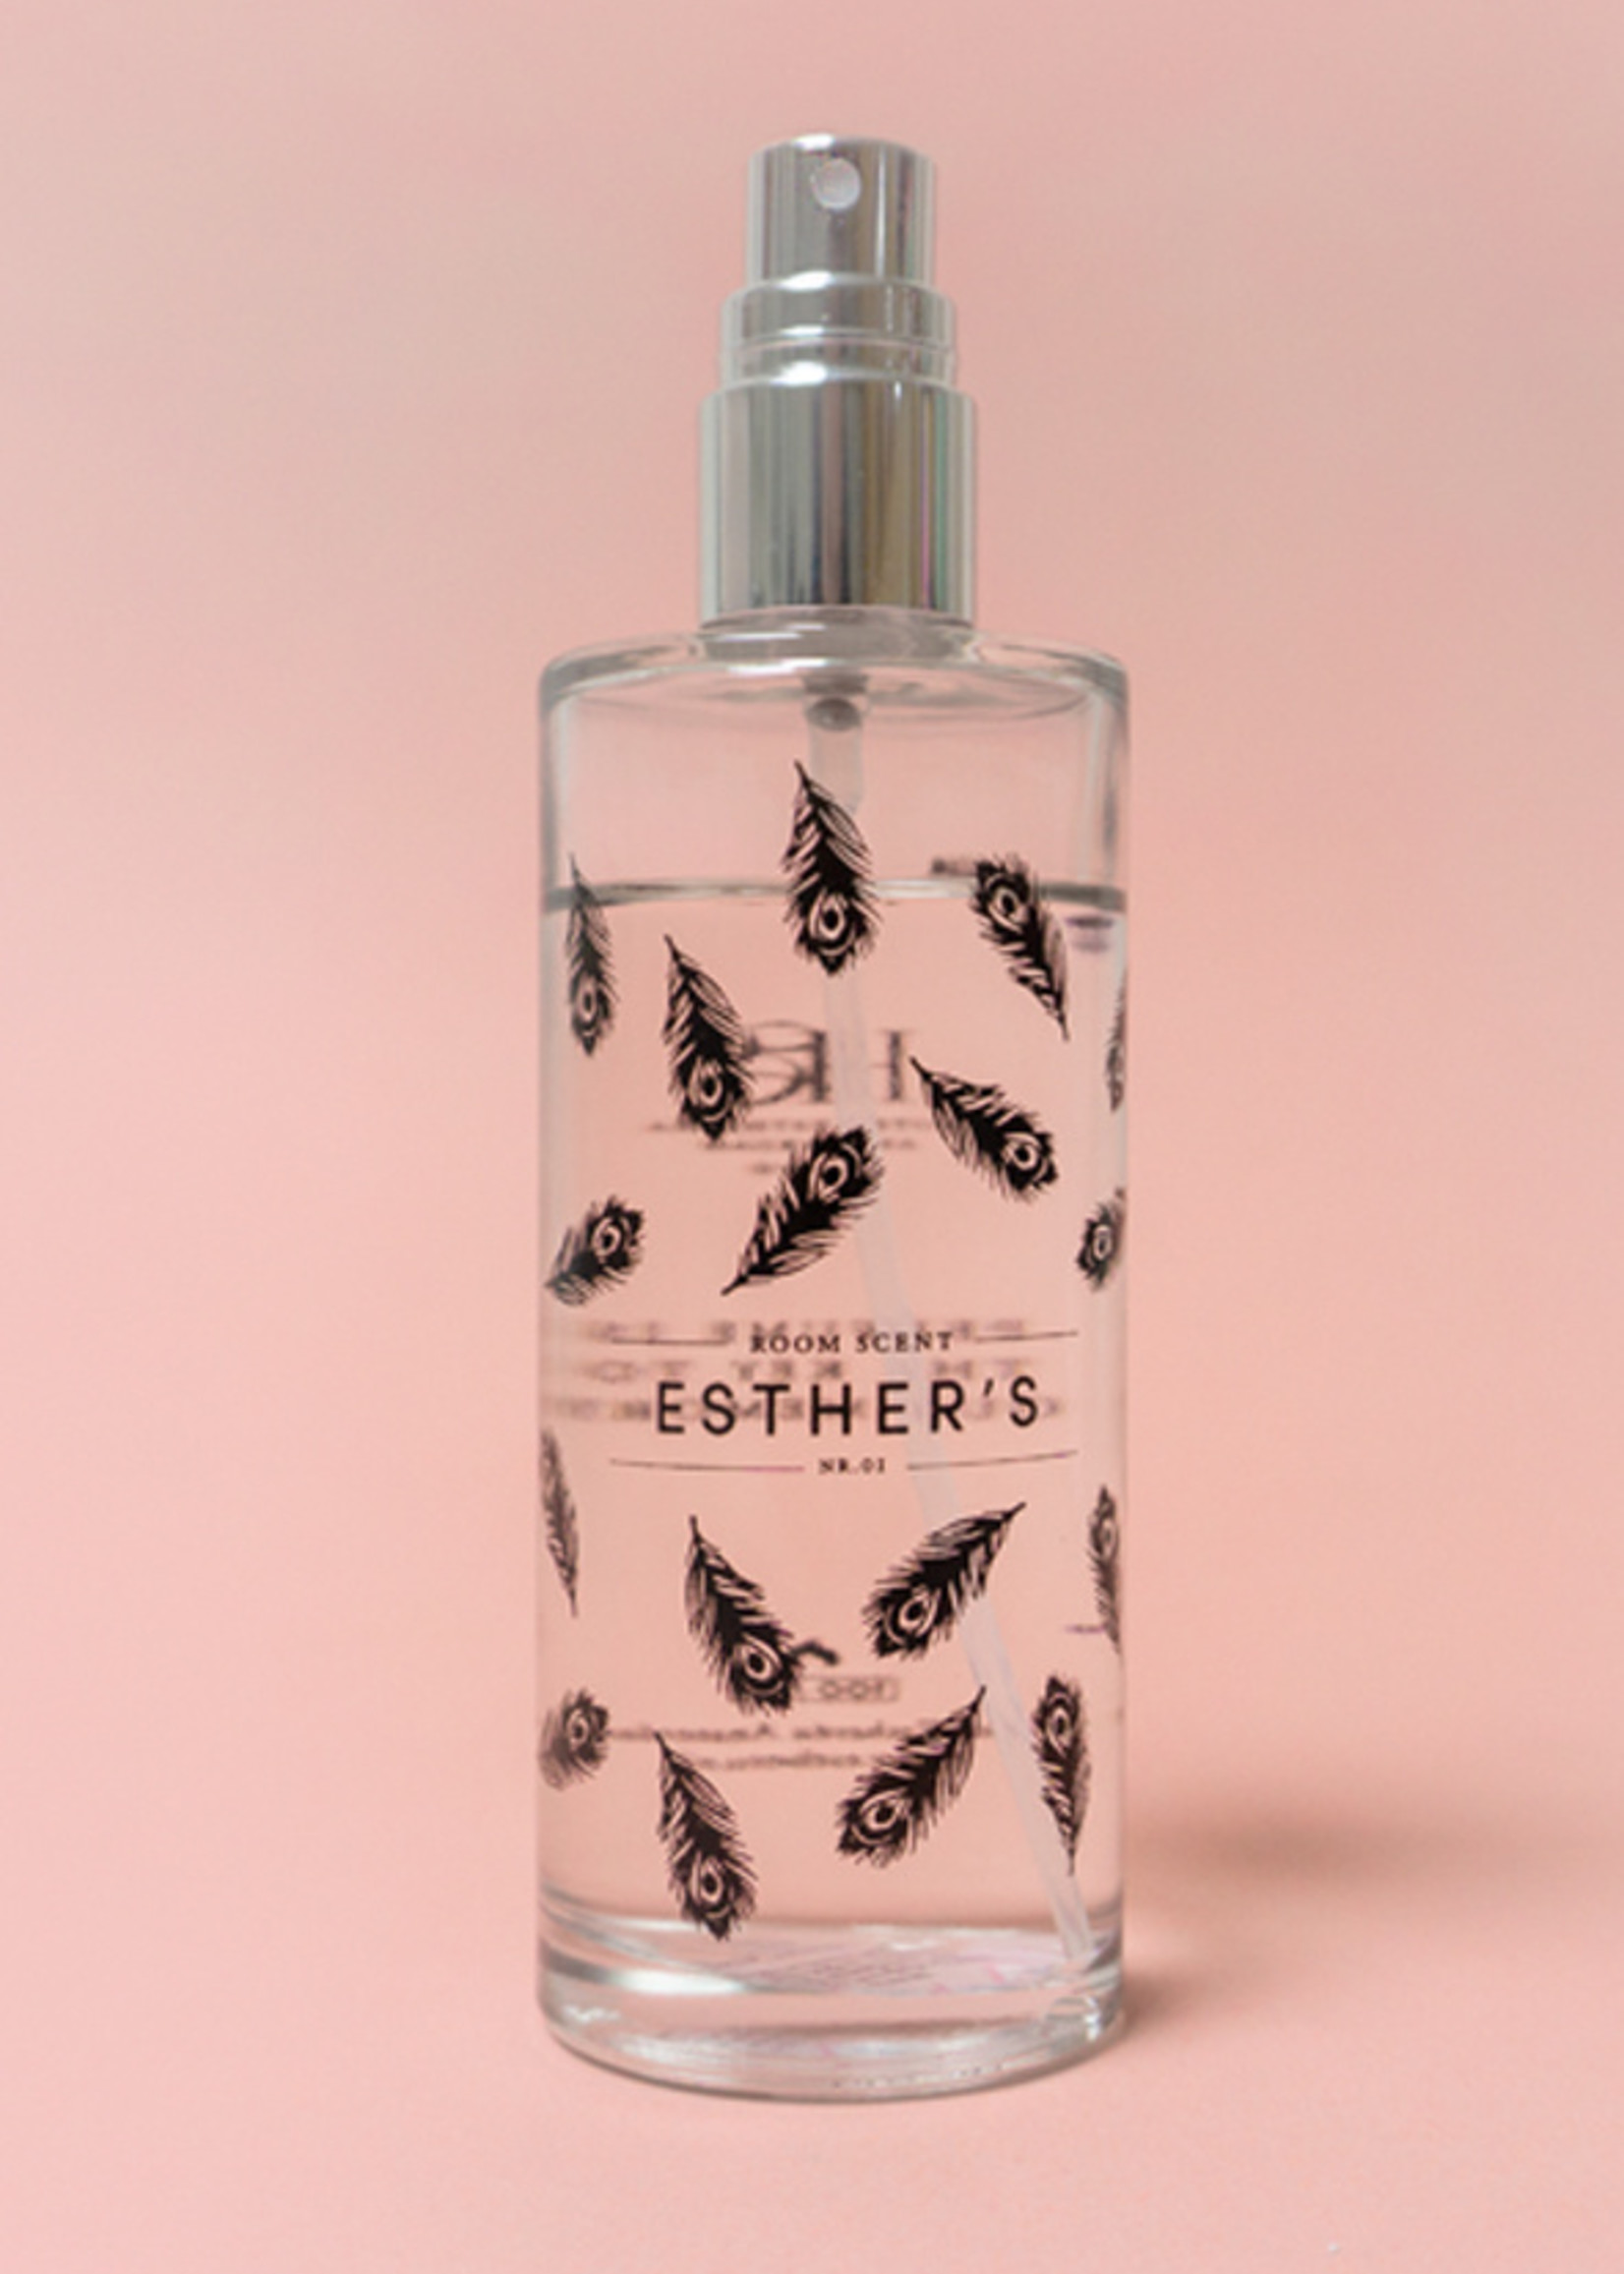 Esther's Esther's no. 01 Room scent